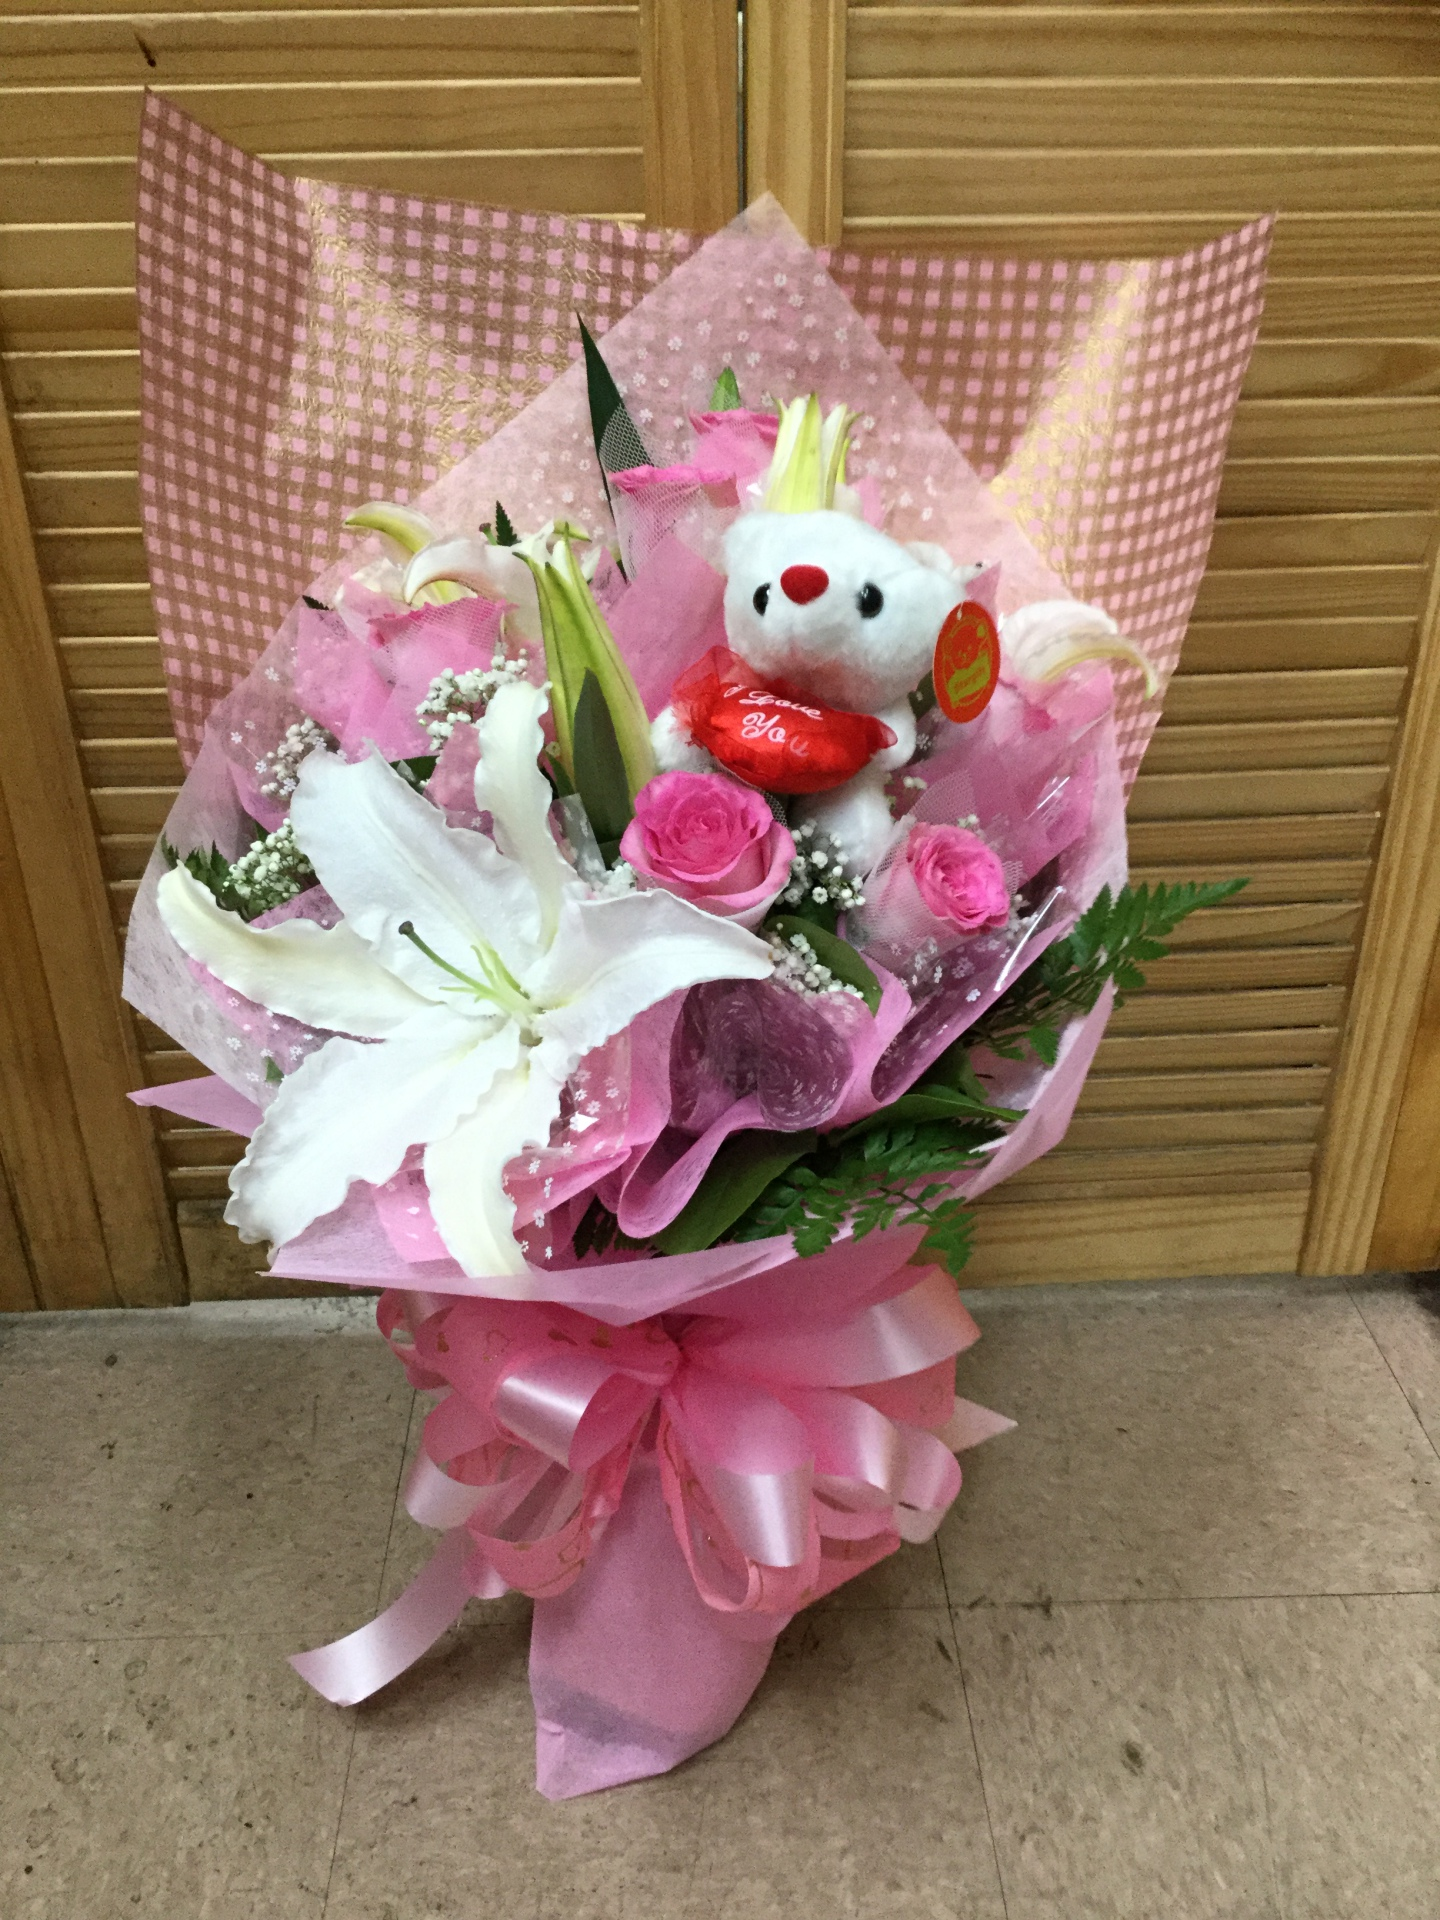 Rose and Lily Bouquet w/ Teddy Bear